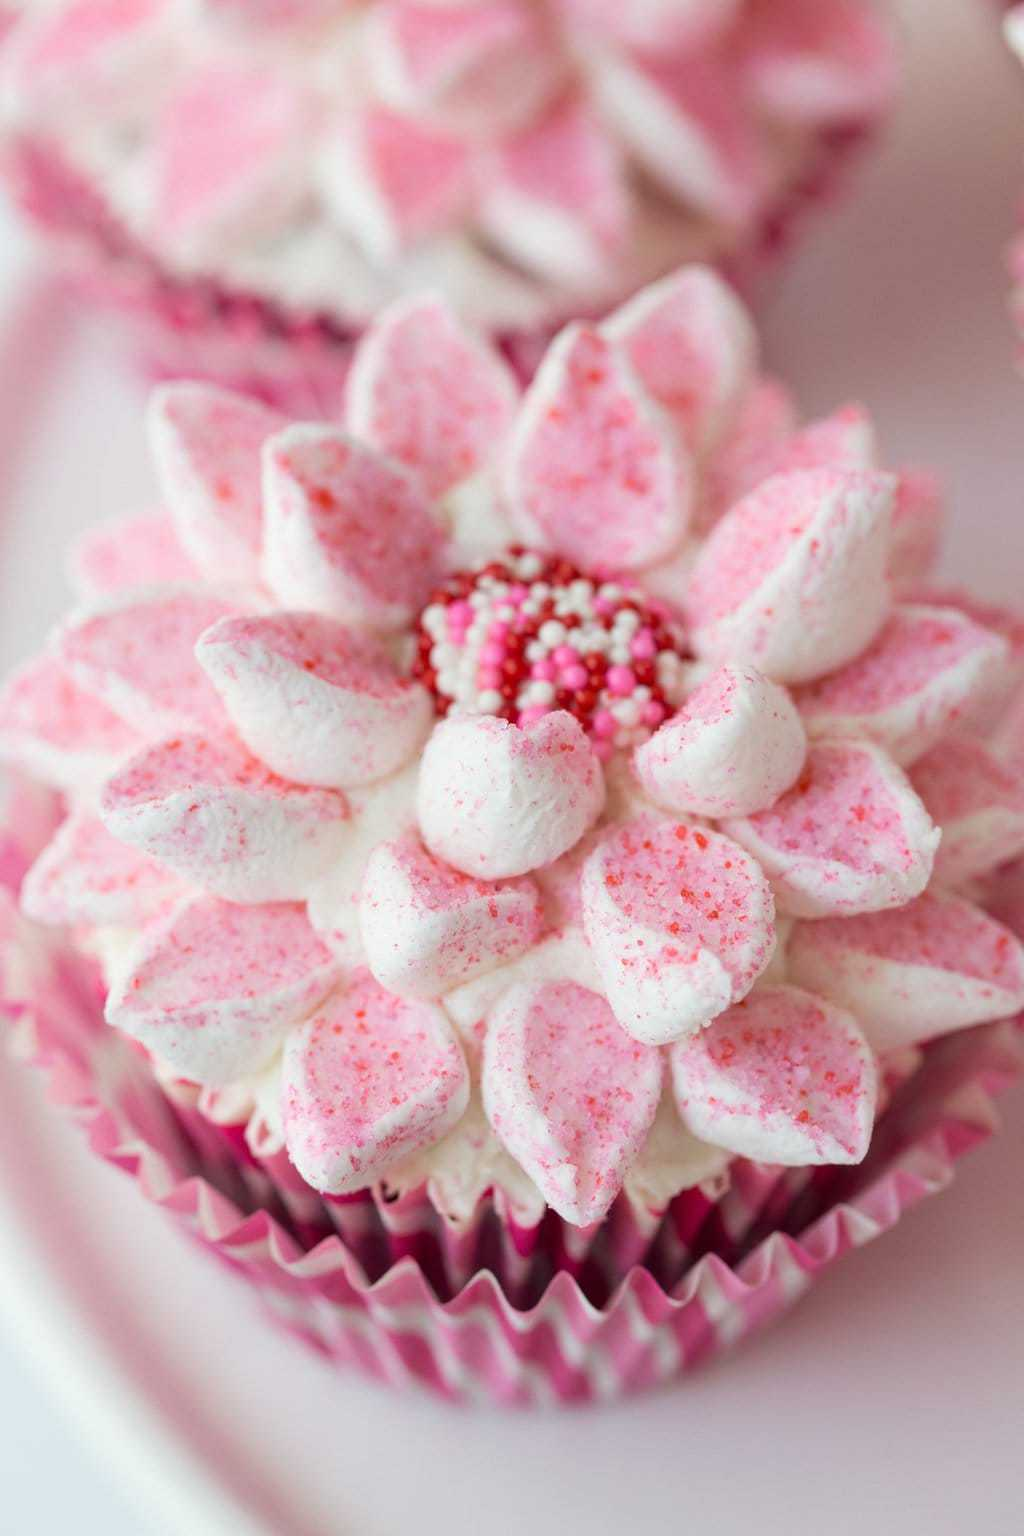 The easy way to decorate beautiful cupcakes the caf sucre farine marshmallow flower cupcakes beautiful delicious and fun a video tutorial on the amazingly izmirmasajfo